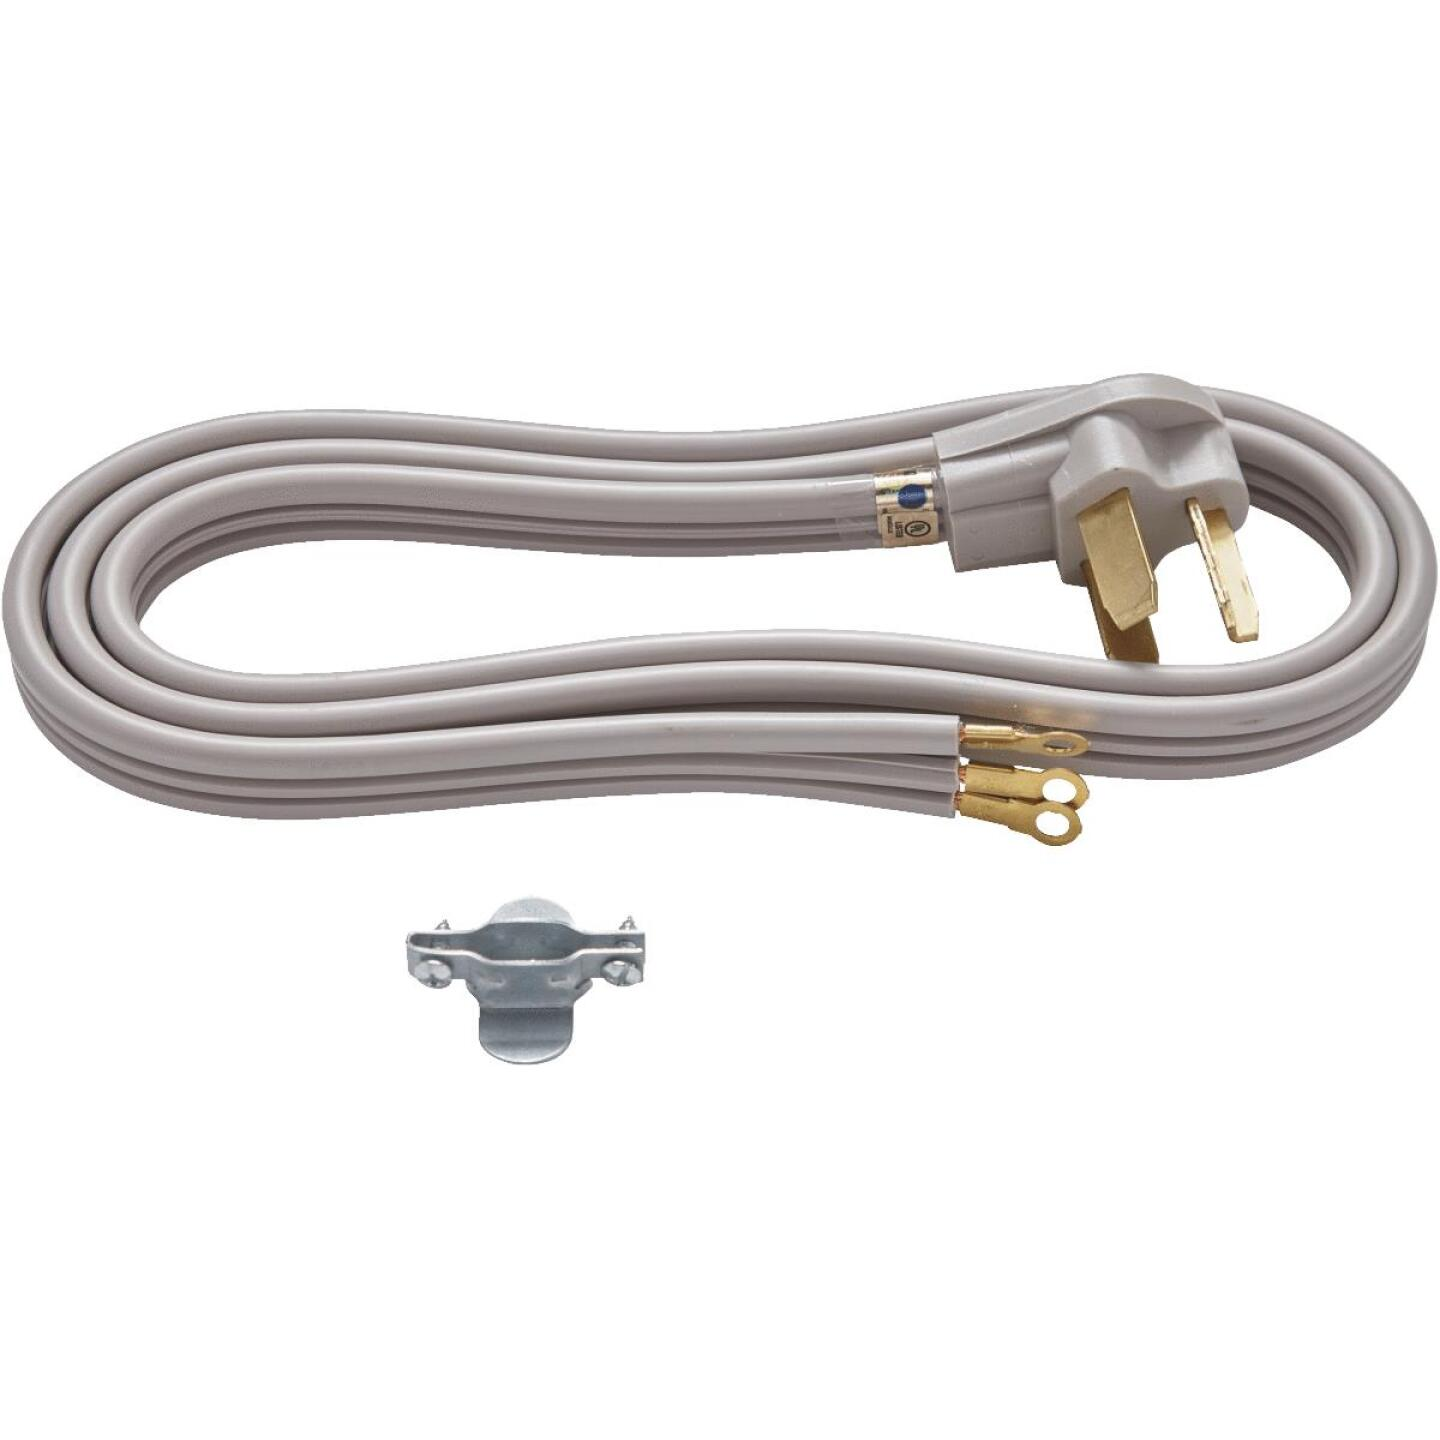 Do it Best 6 Ft. 10/3 30A Dryer Cord Image 2